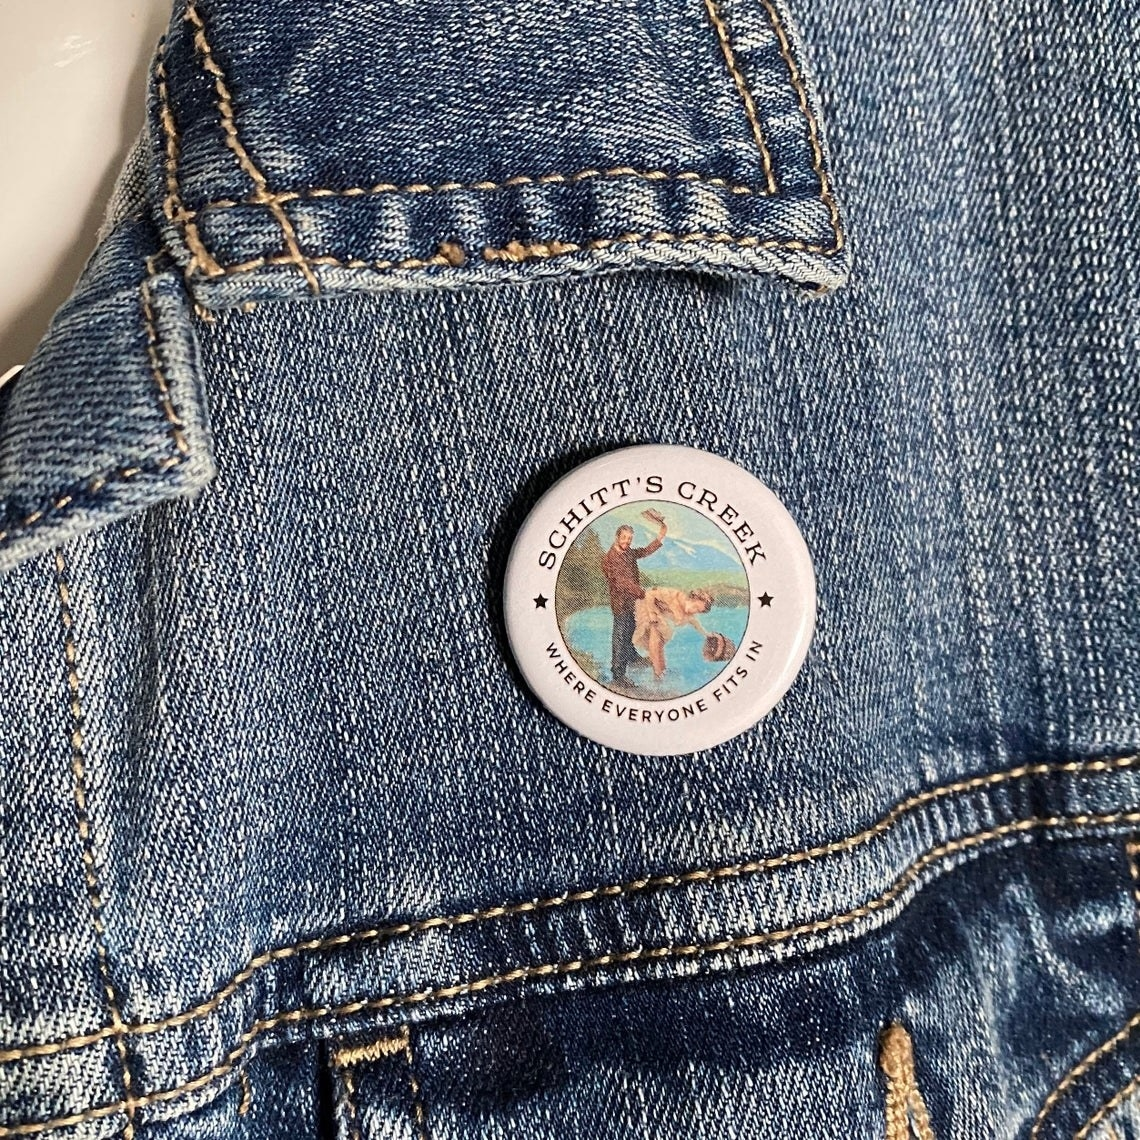 The button above the pocket on a jean jacket